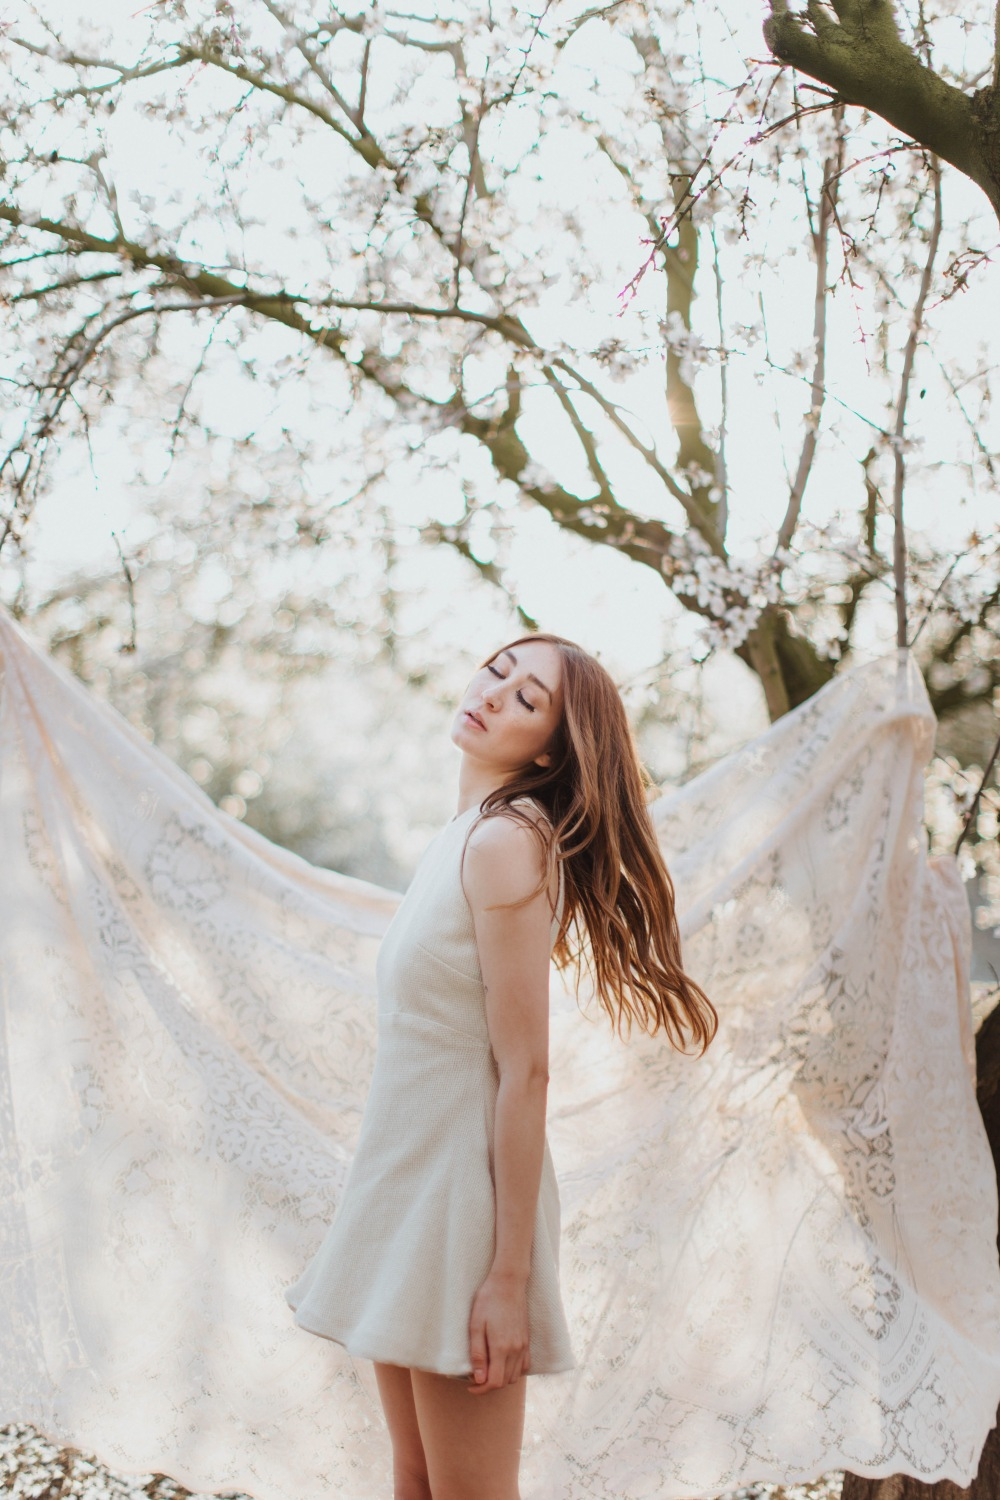 Alyssa-Nicole-Kayliegh-Dress-Beyond-The-Blossoms-7